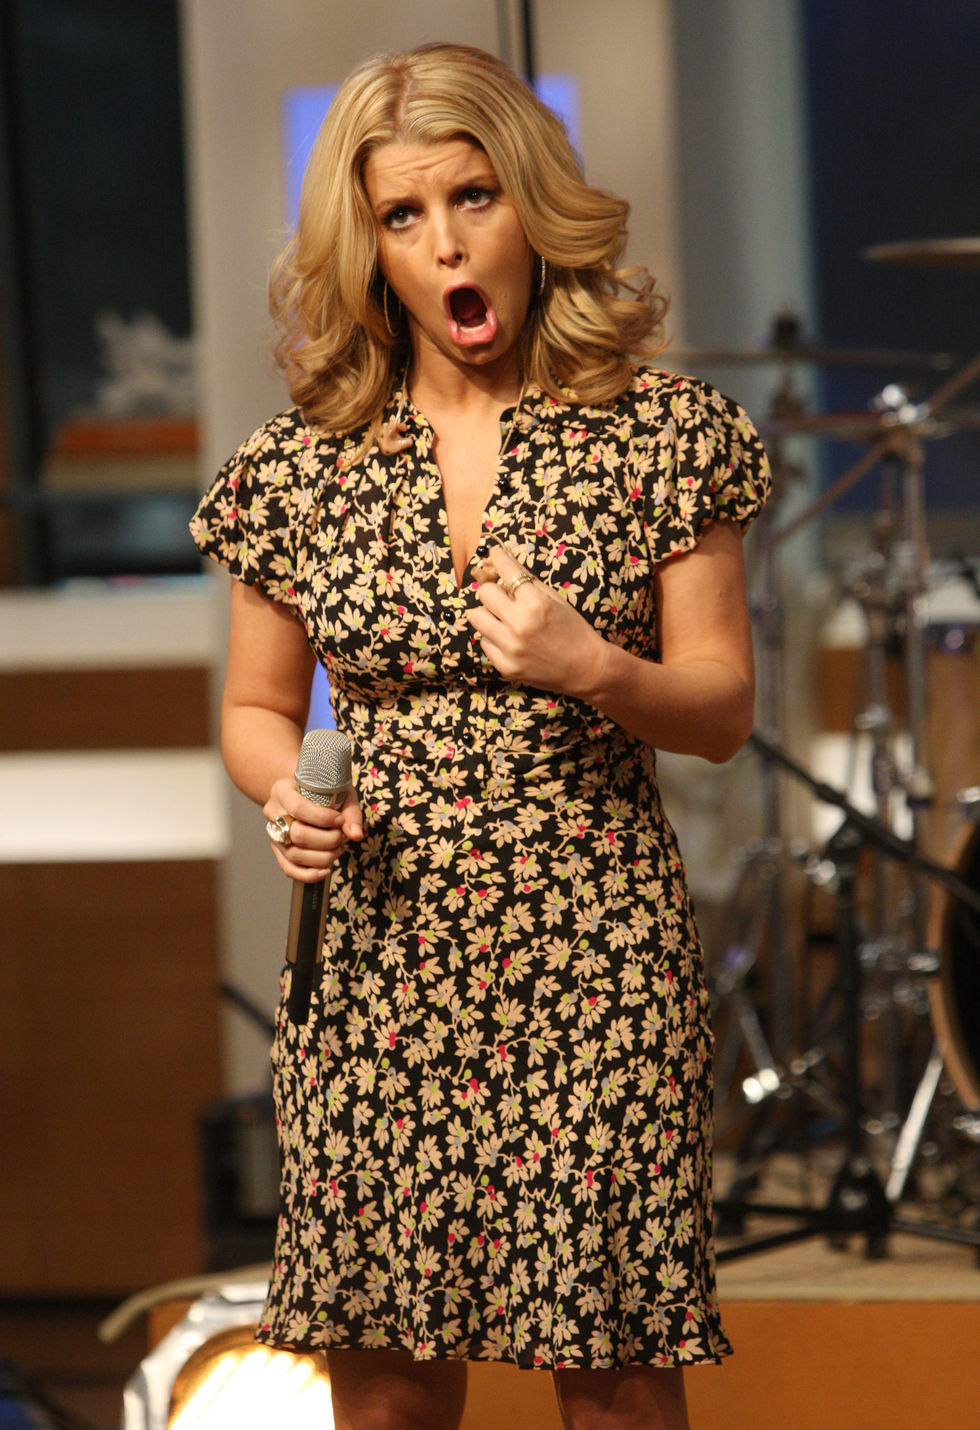 jessica-simpson-performs-at-cbs-the-early-show-in-new-york-city-04